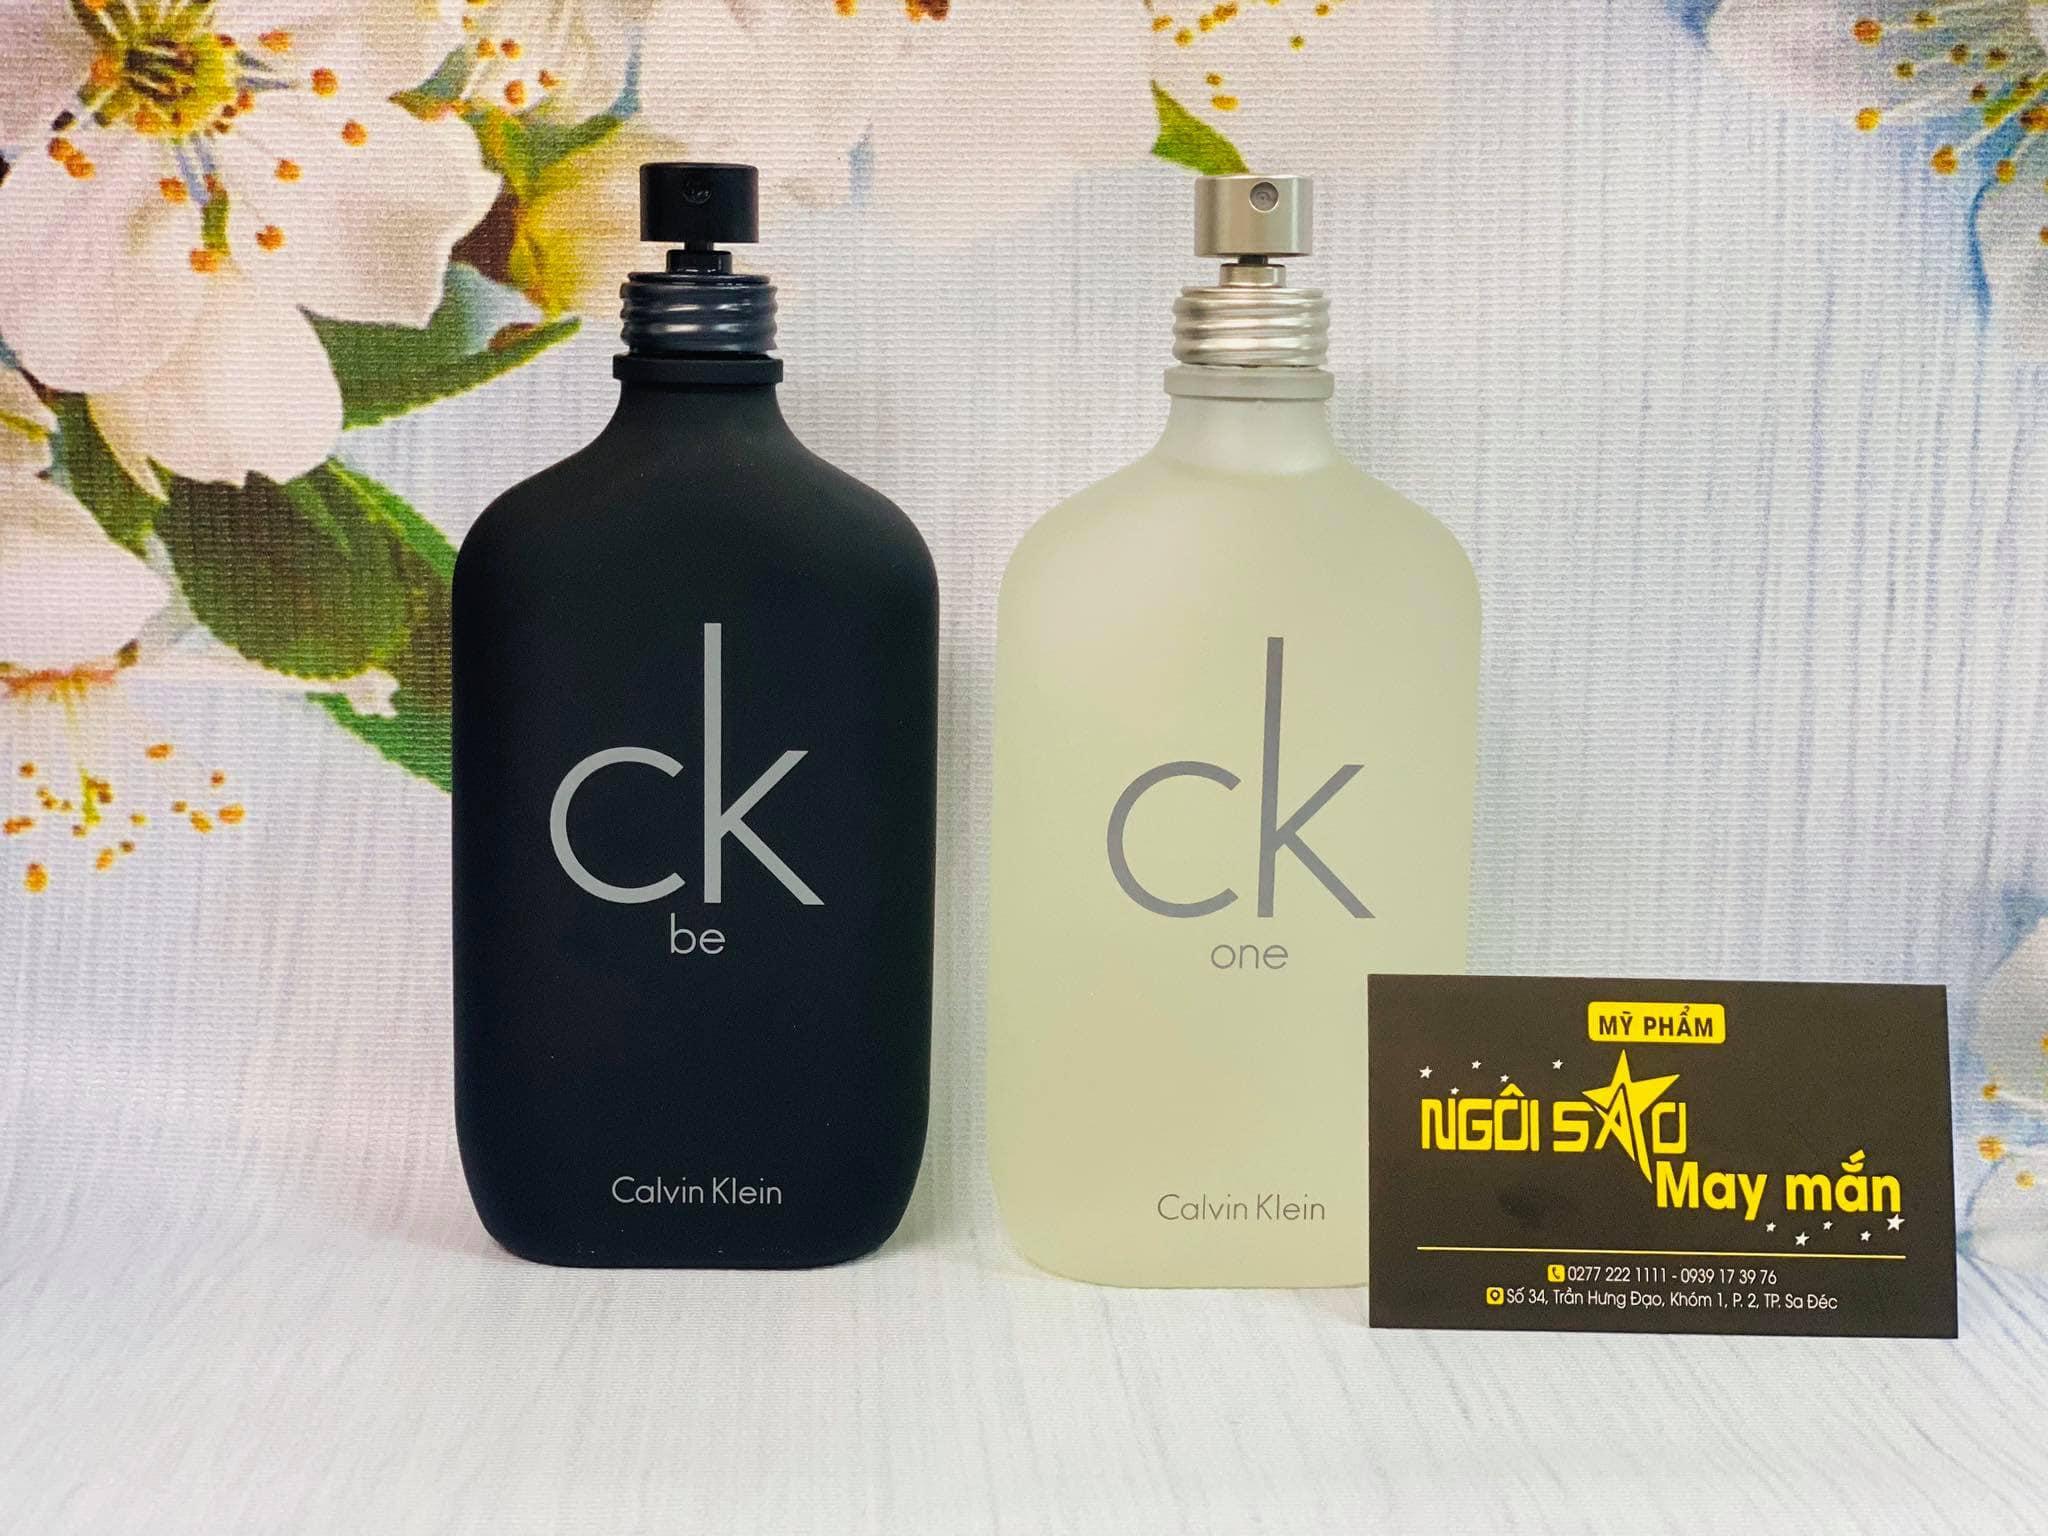 Nước hoa CK One - Ck be 200ml